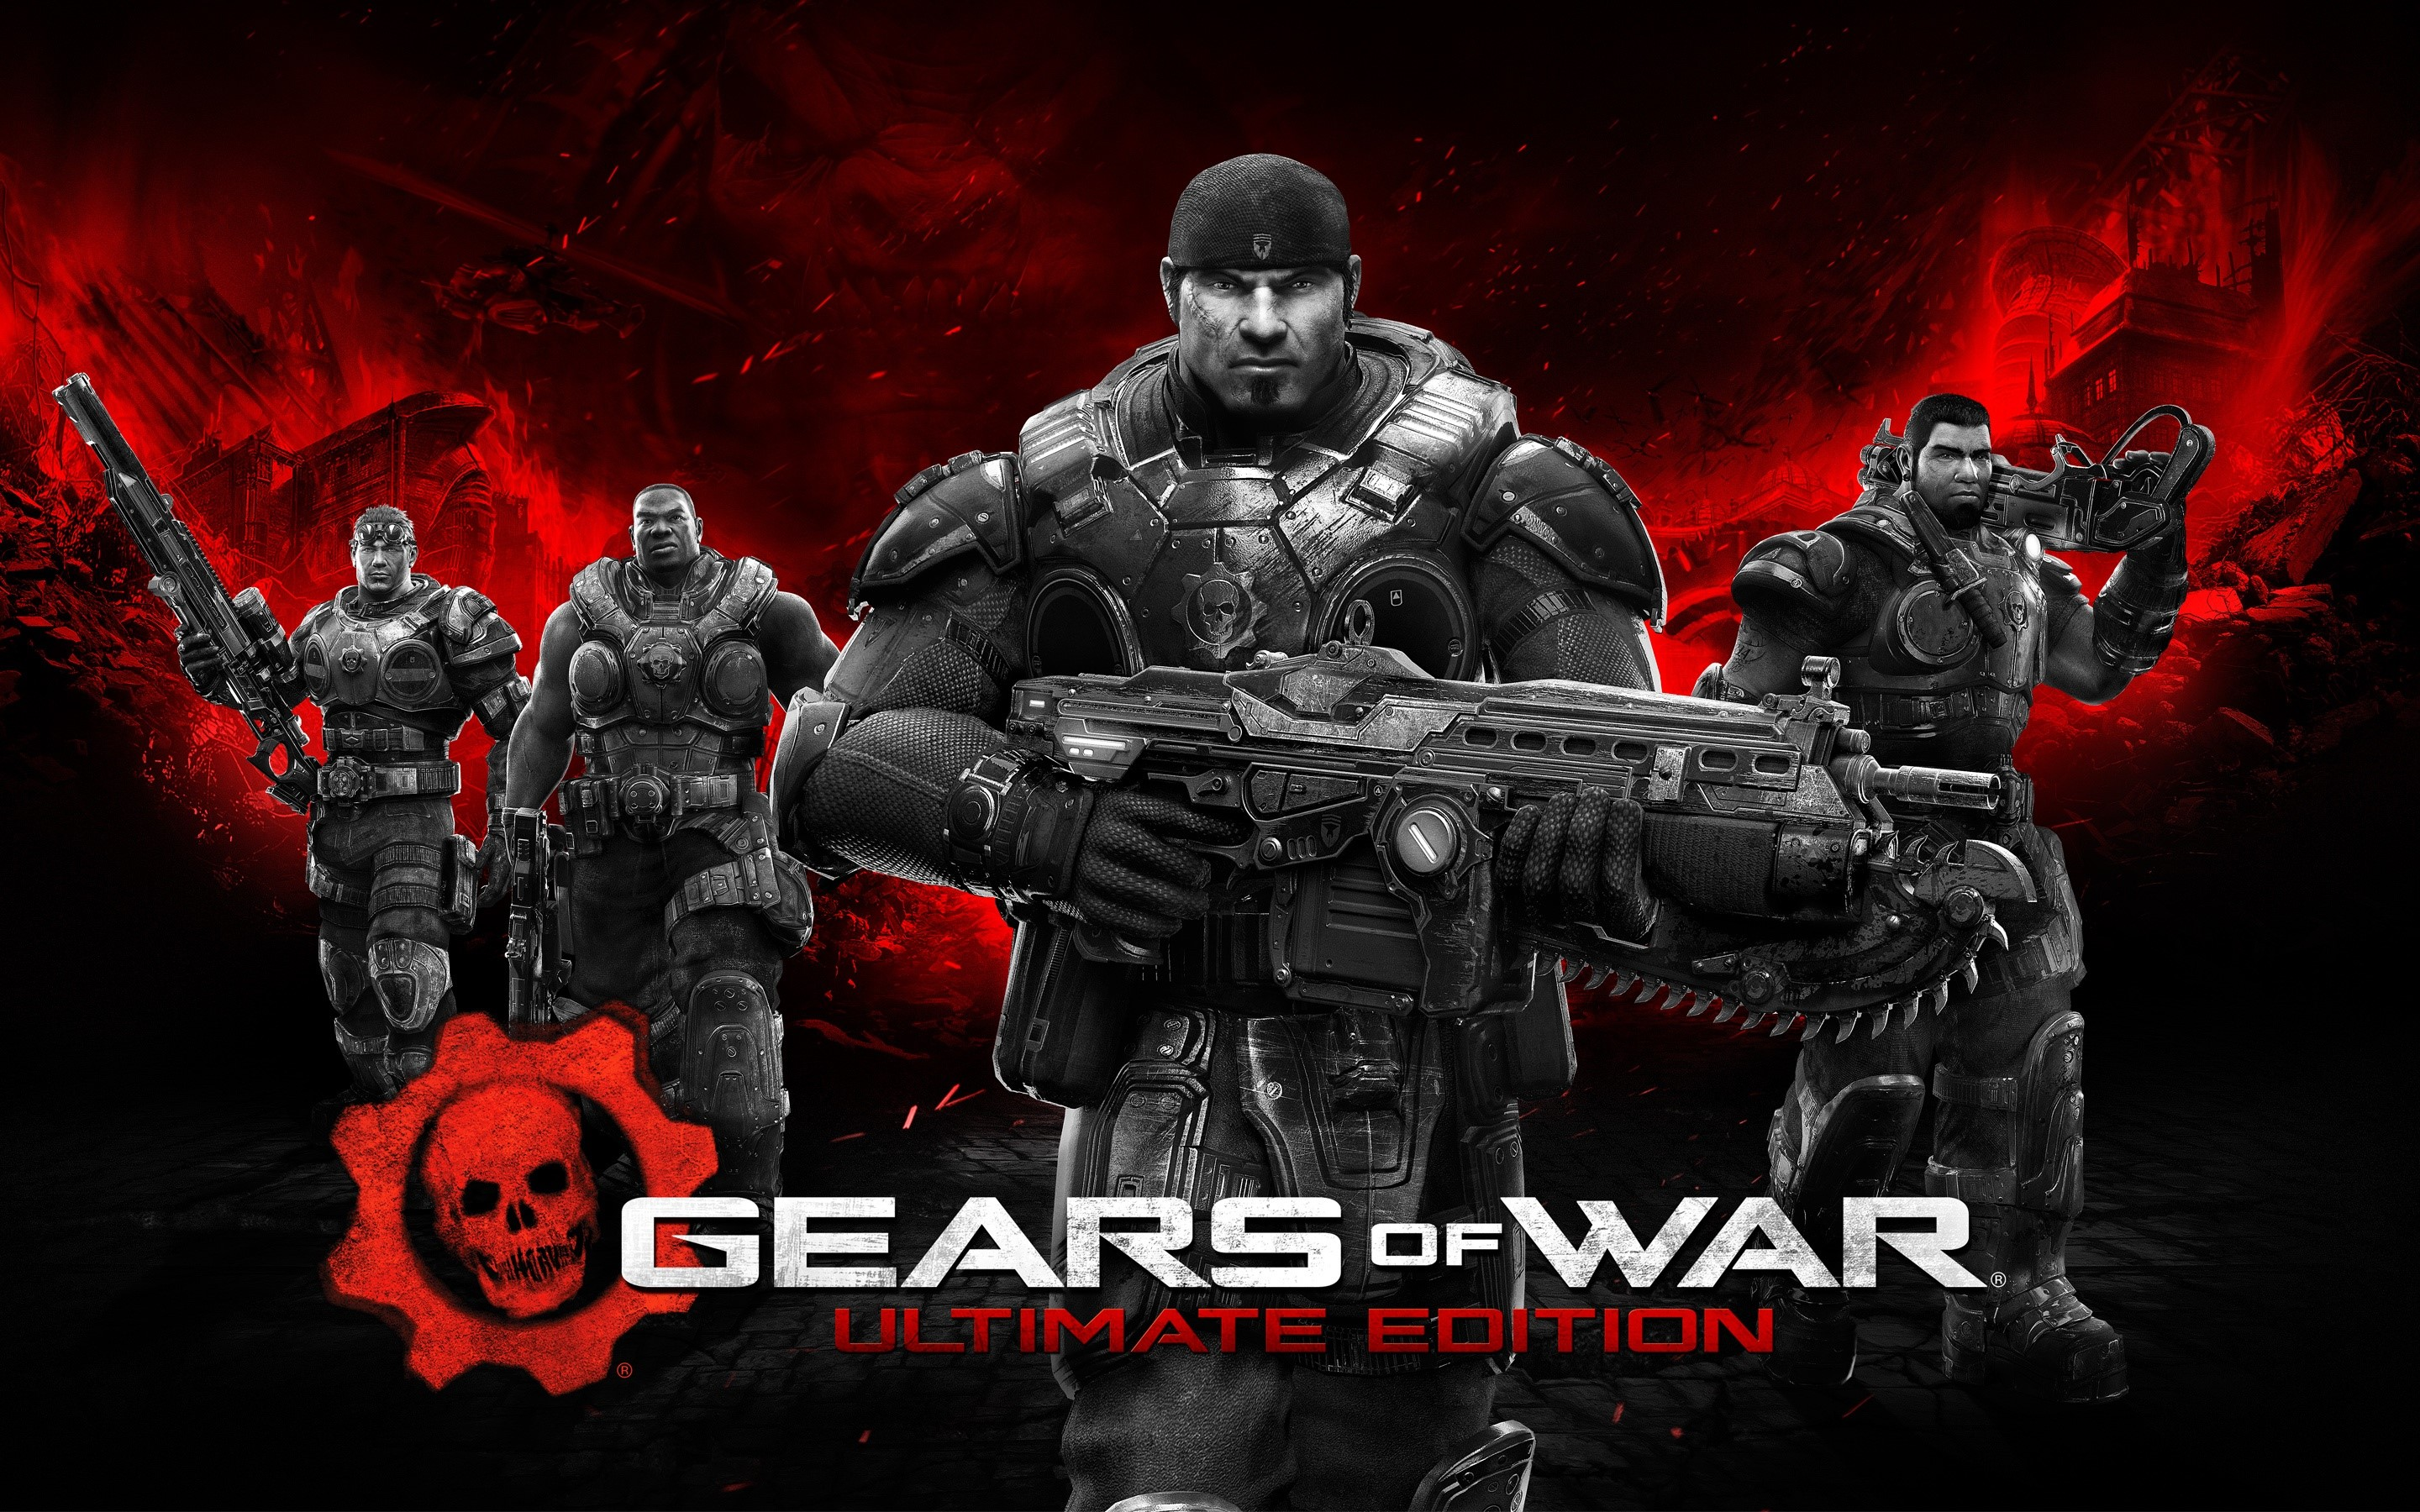 Fondos de pantalla Gears Of War Ultimate Edition